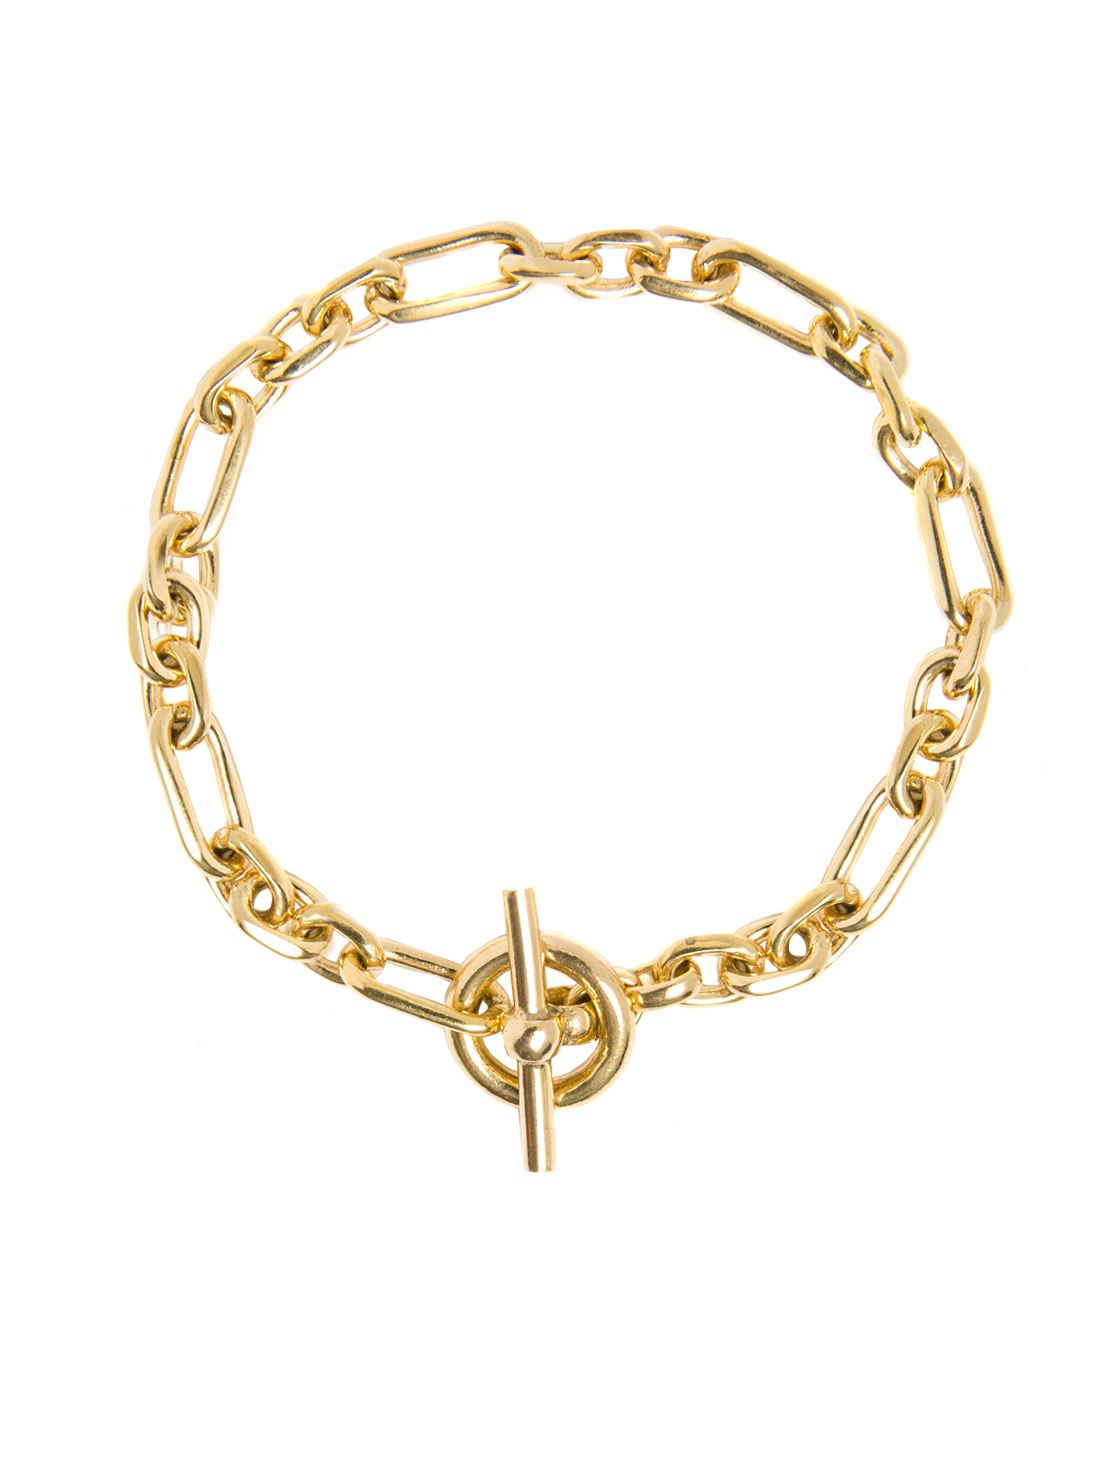 Gold Watch Chain Bracelet - Tilly Sveaas Jewellery